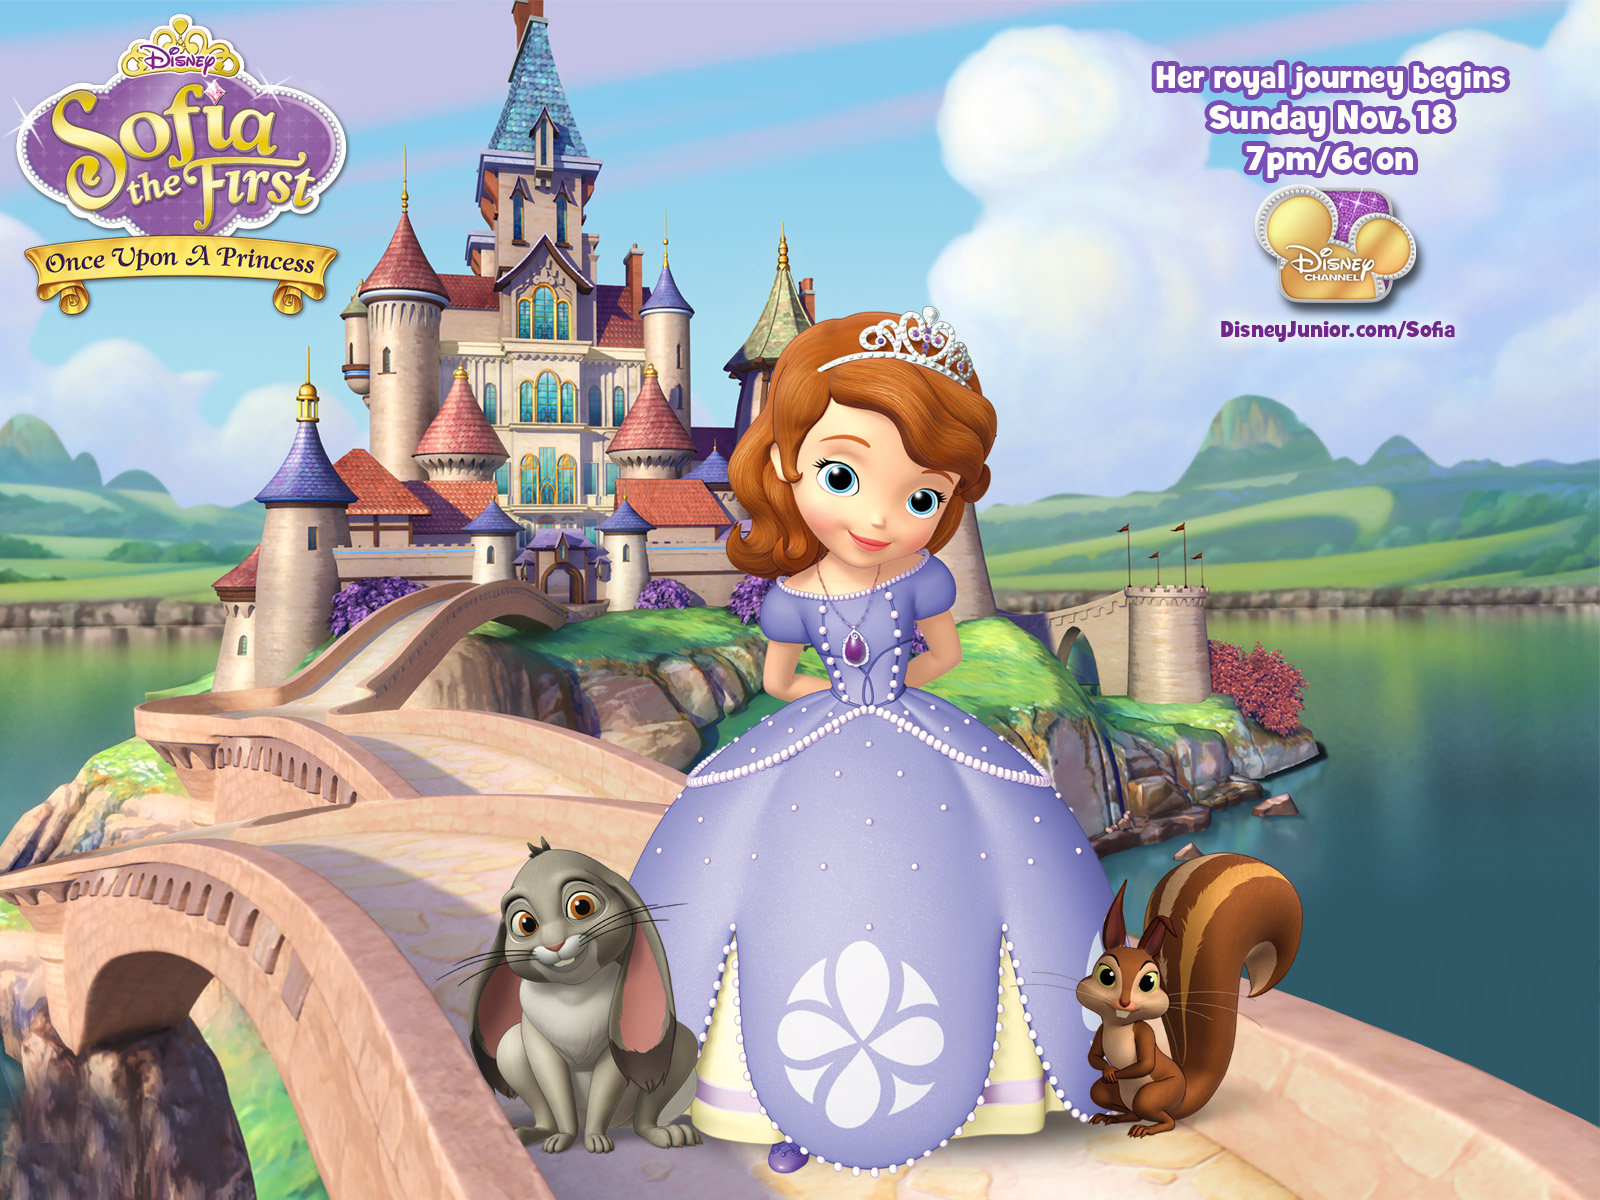 Set Your DVRs: 'Sofia the First' Premieres on Disney Junior this Sunday